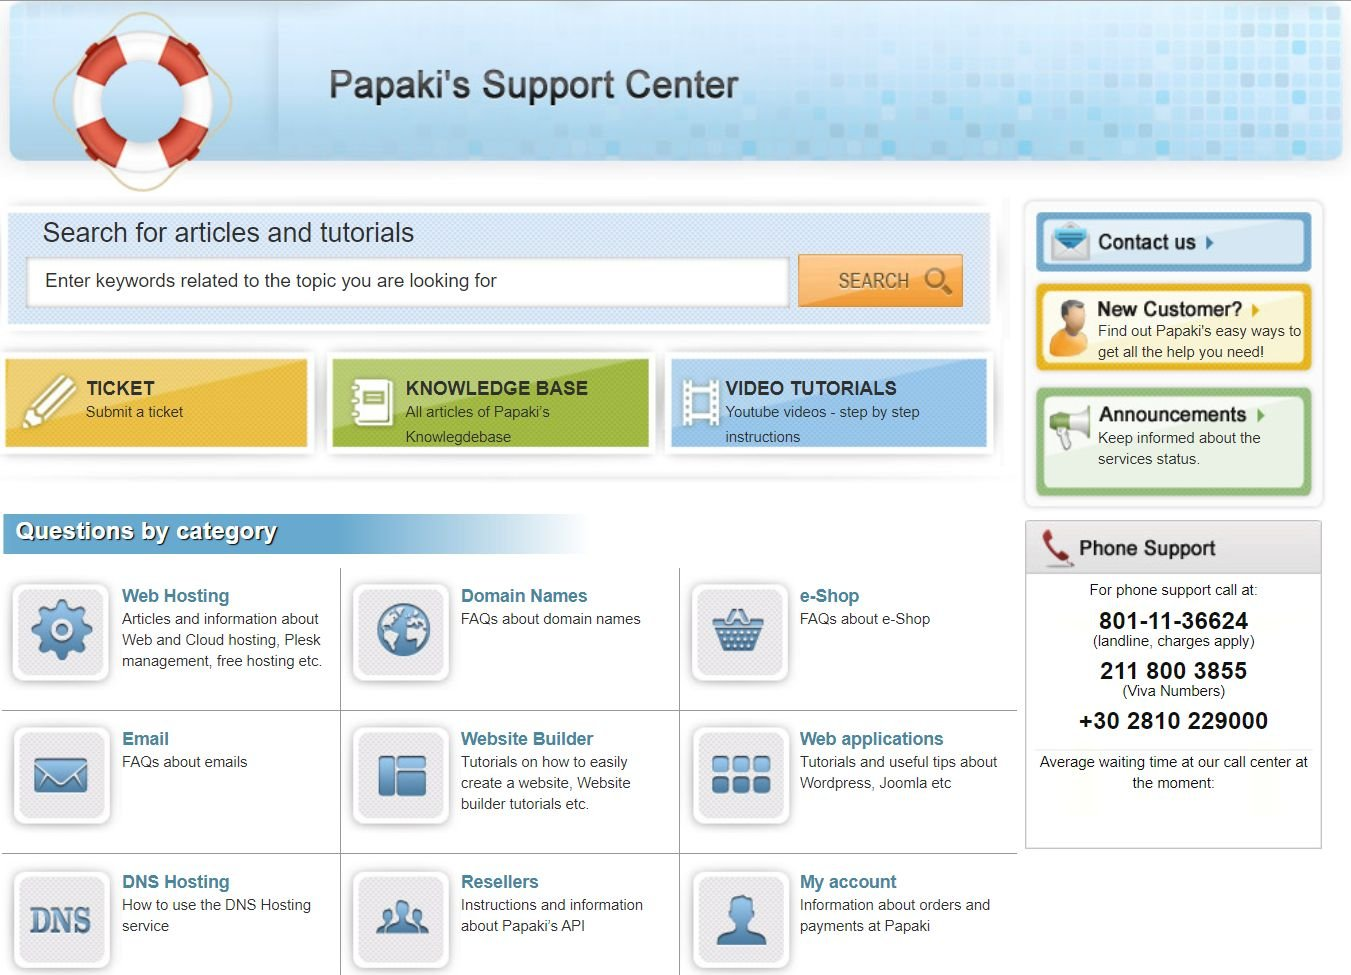 Papaki support center